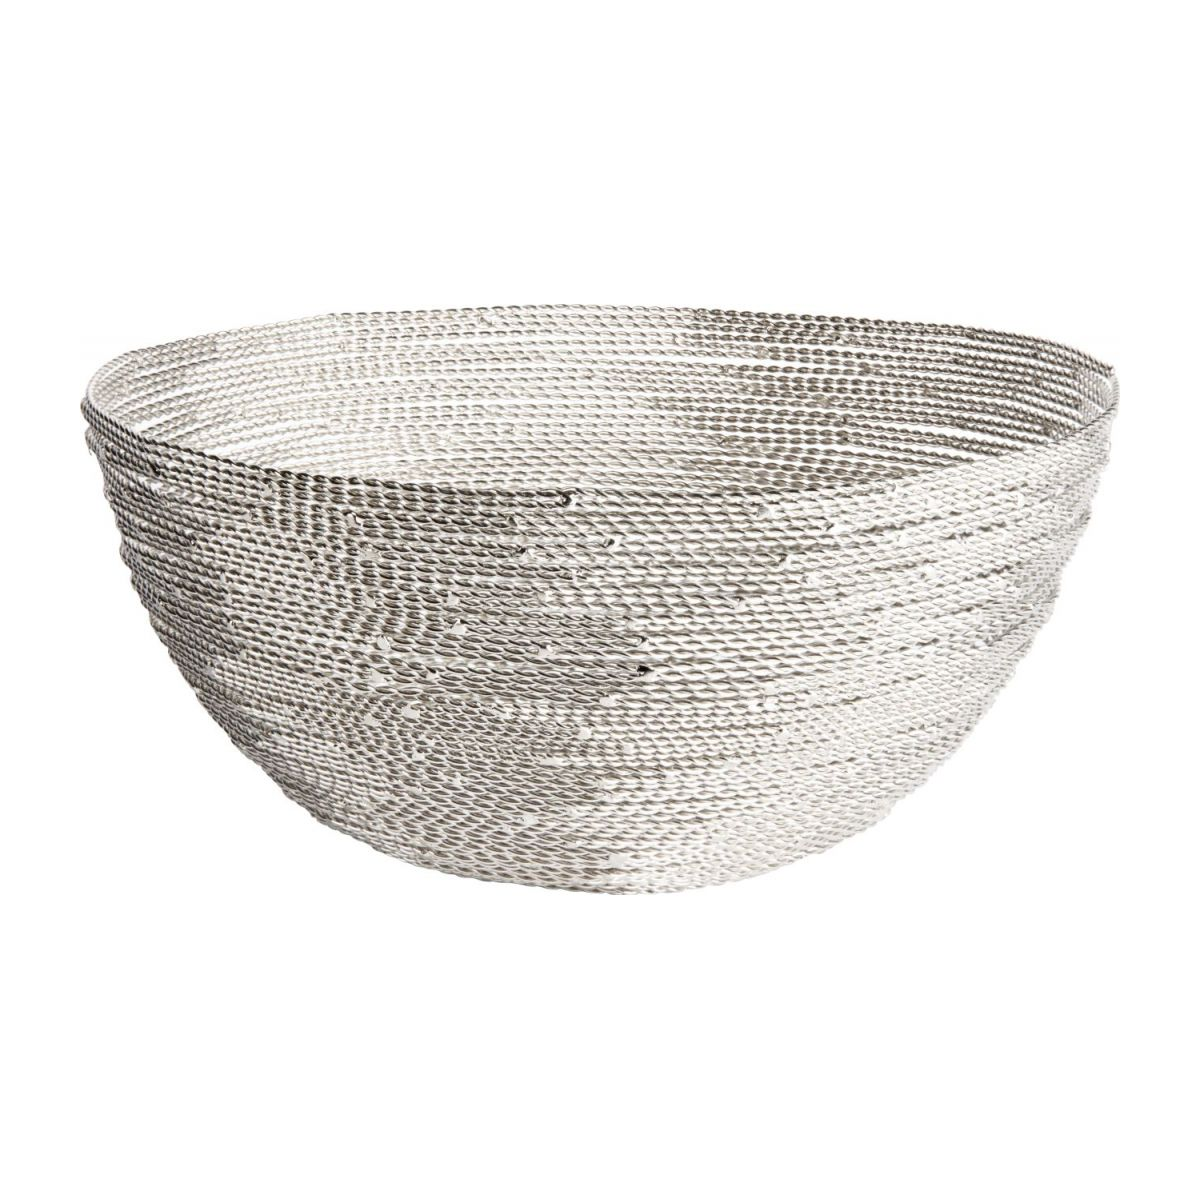 Small nickel twisted wire bowl n°1